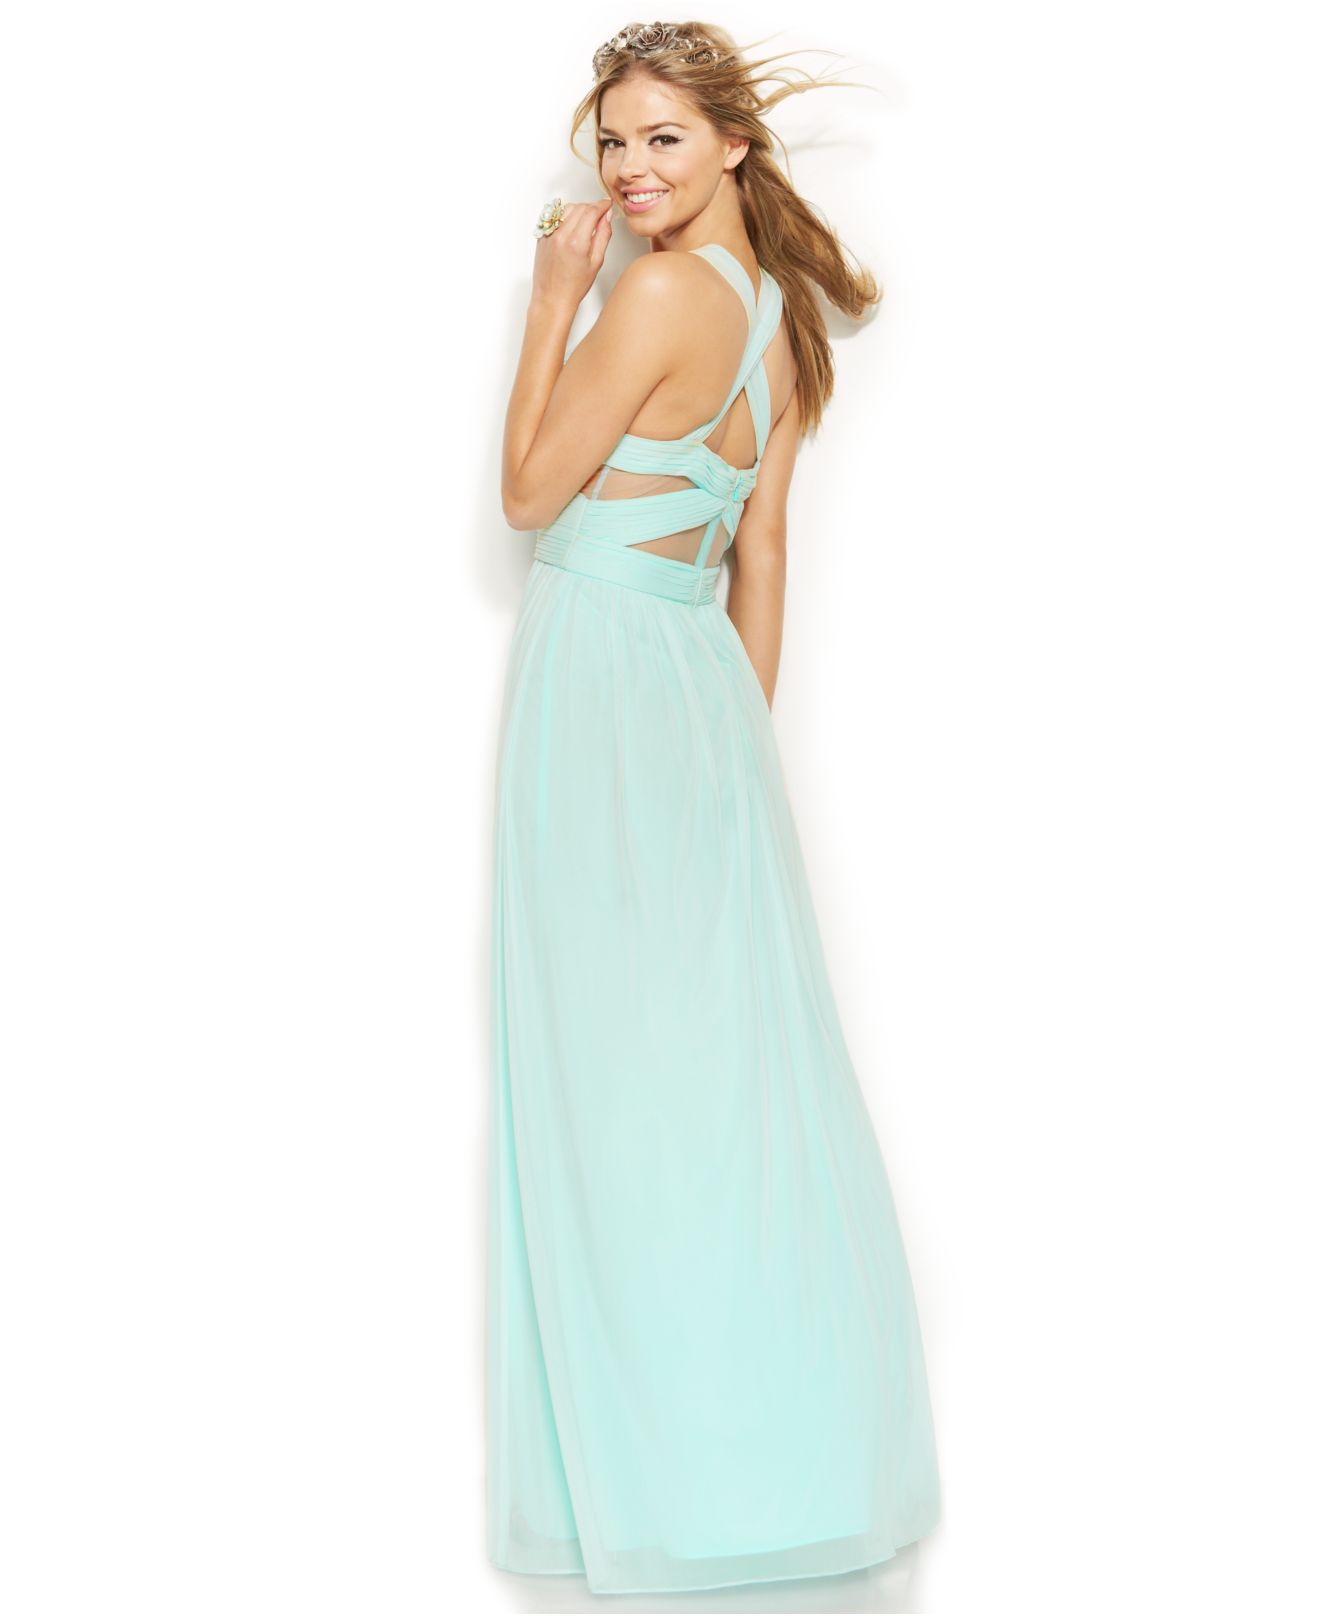 Lyst - Betsy & Adam Sleeveless Illusion Cutout Gown in Green